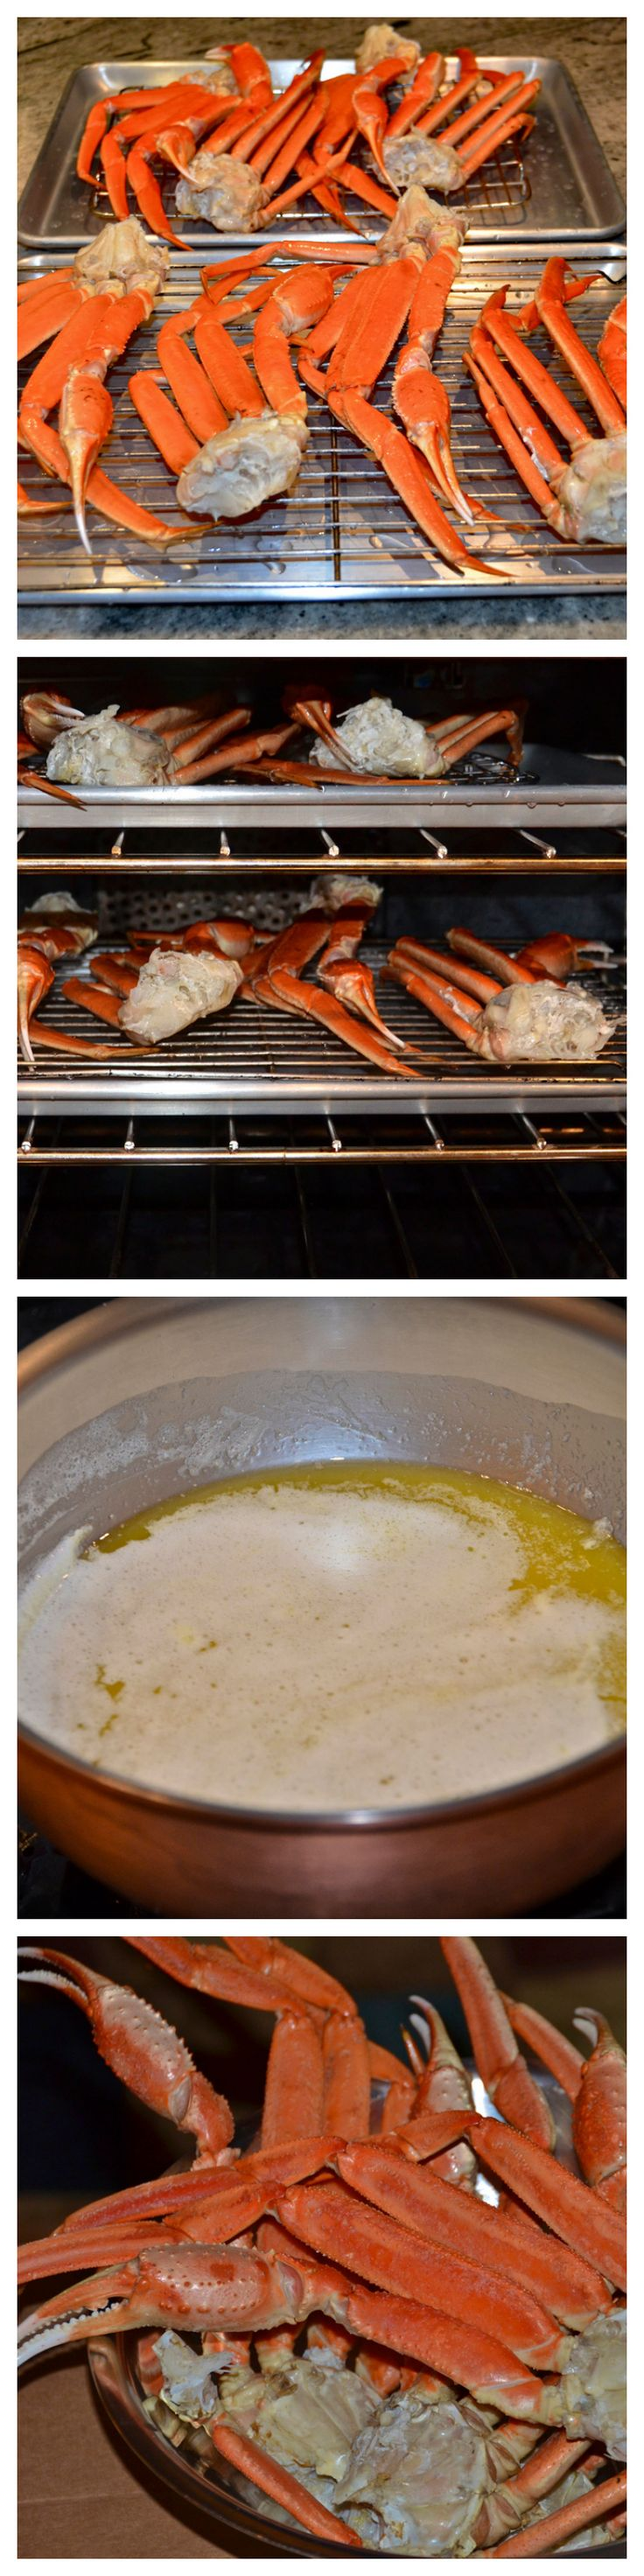 Easy, fun, and romantic dinner for two at home:  Roasted Crab Legs and Melted Butter! Don't forget to like!!